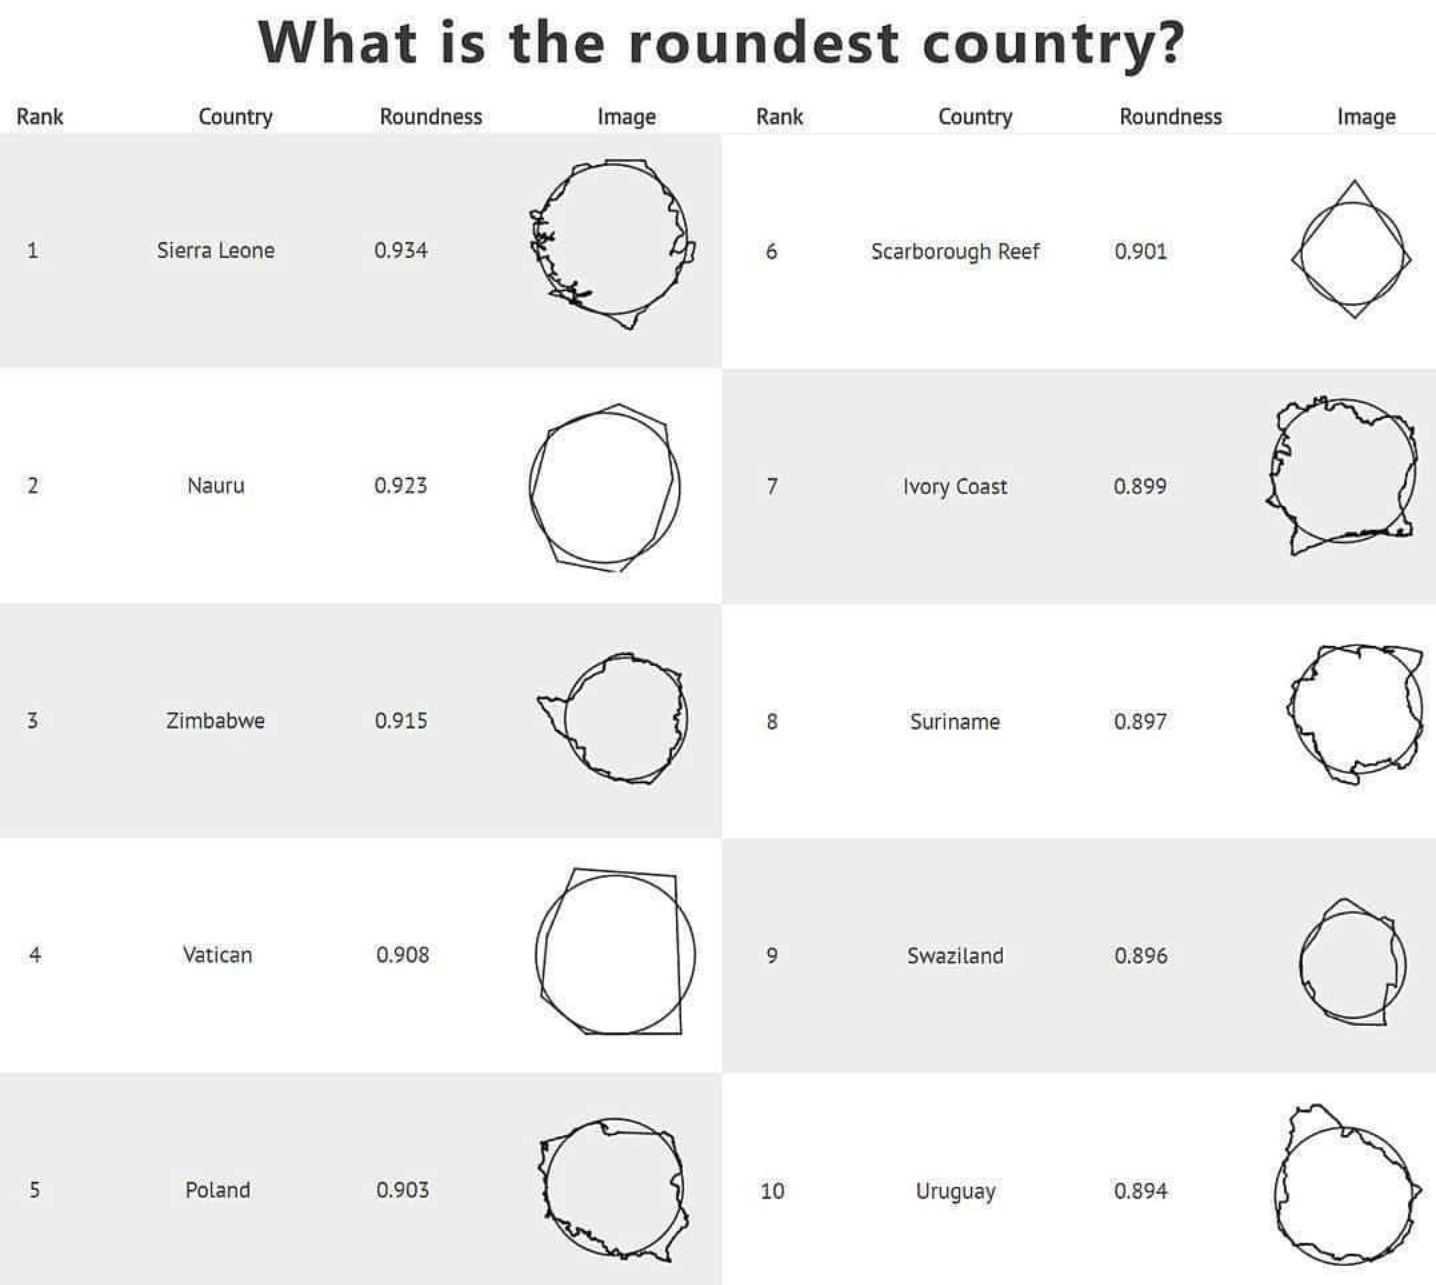 Most roundest countries